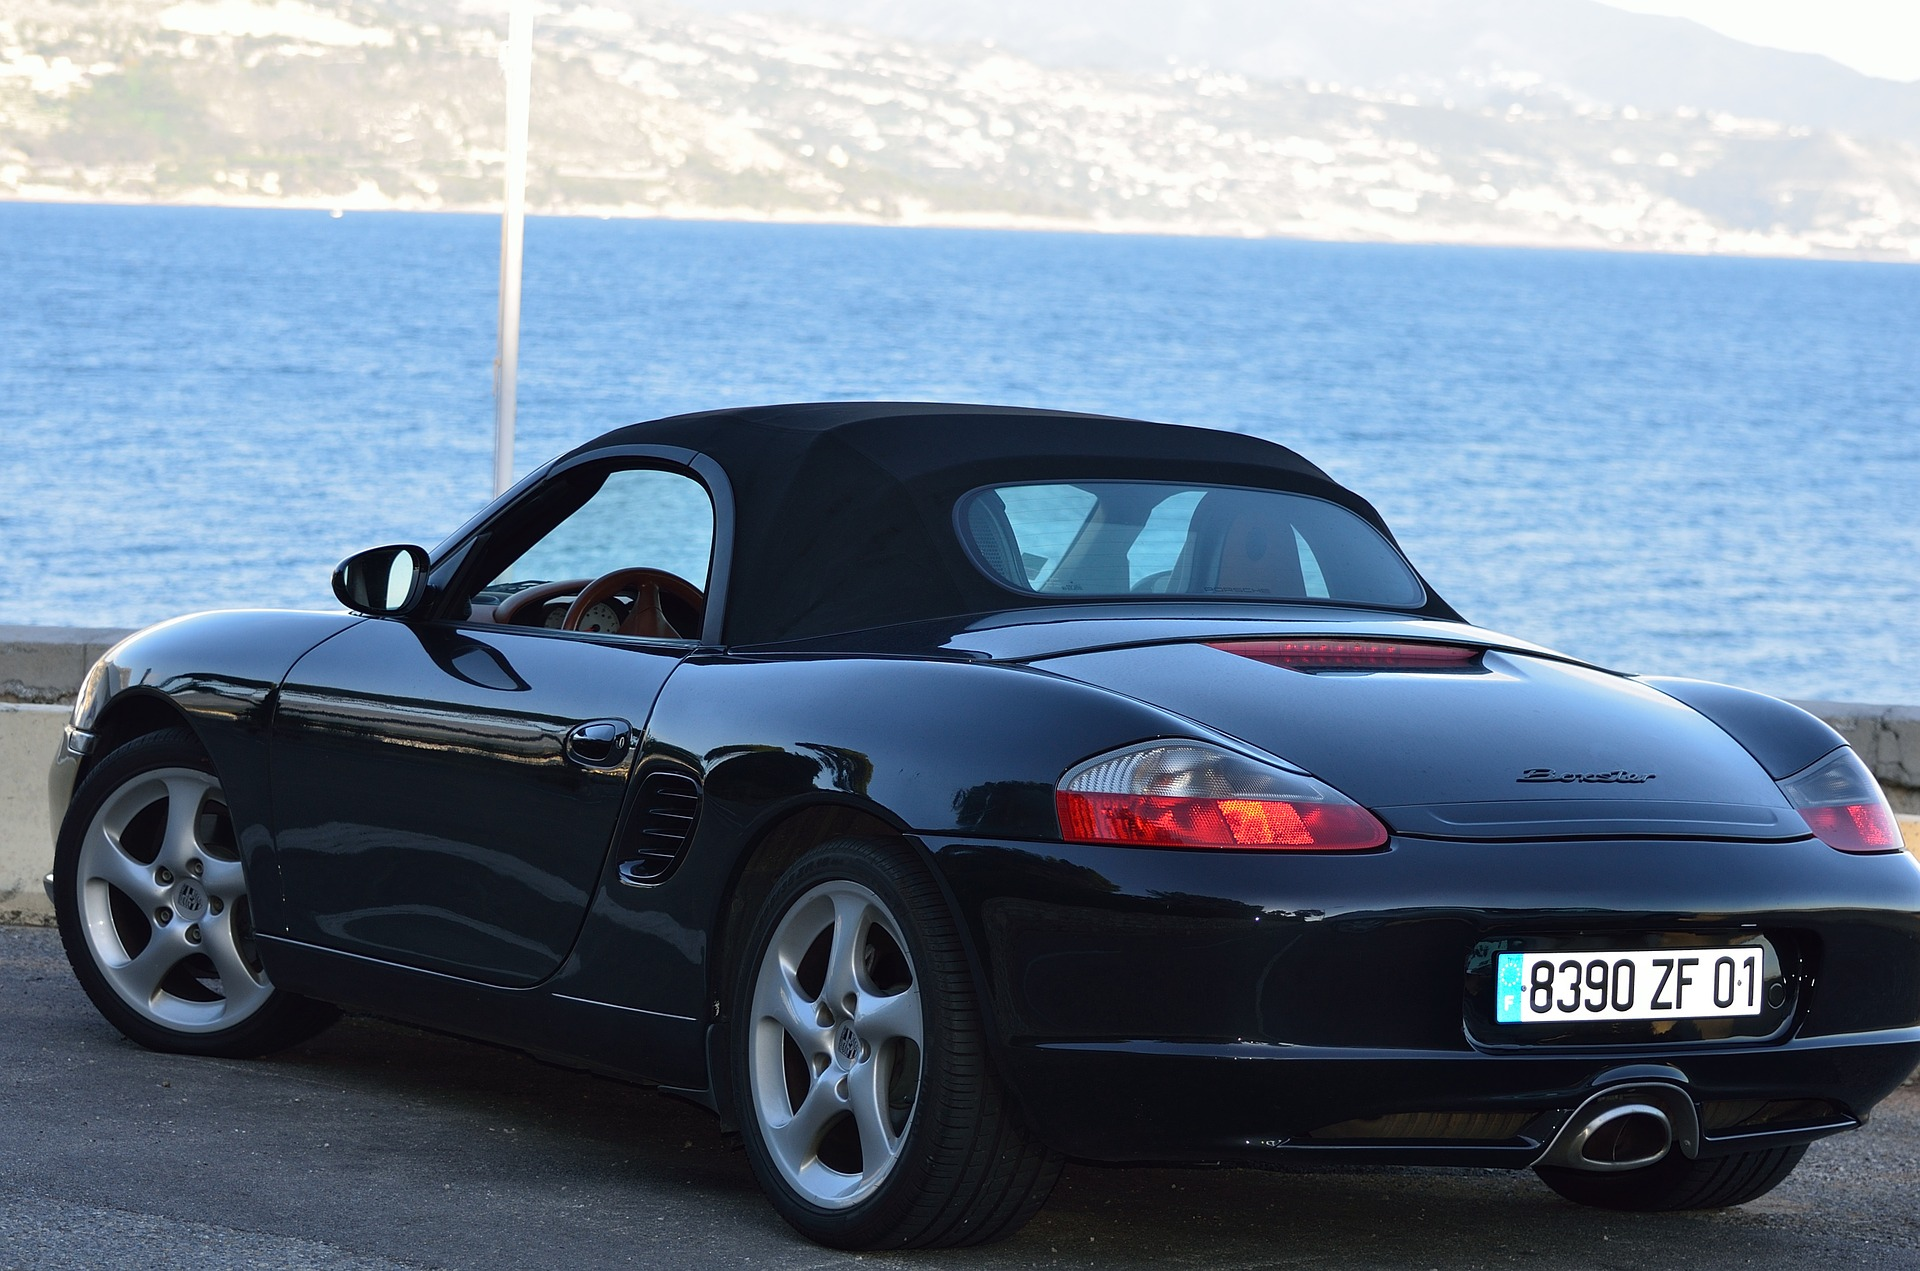 The Porsche Boxster Is Without A Doubt The Most Popular Sports Car  Currently Available. The Car Was Originally Introduced In 1996, Designed By  Grant Larson ...